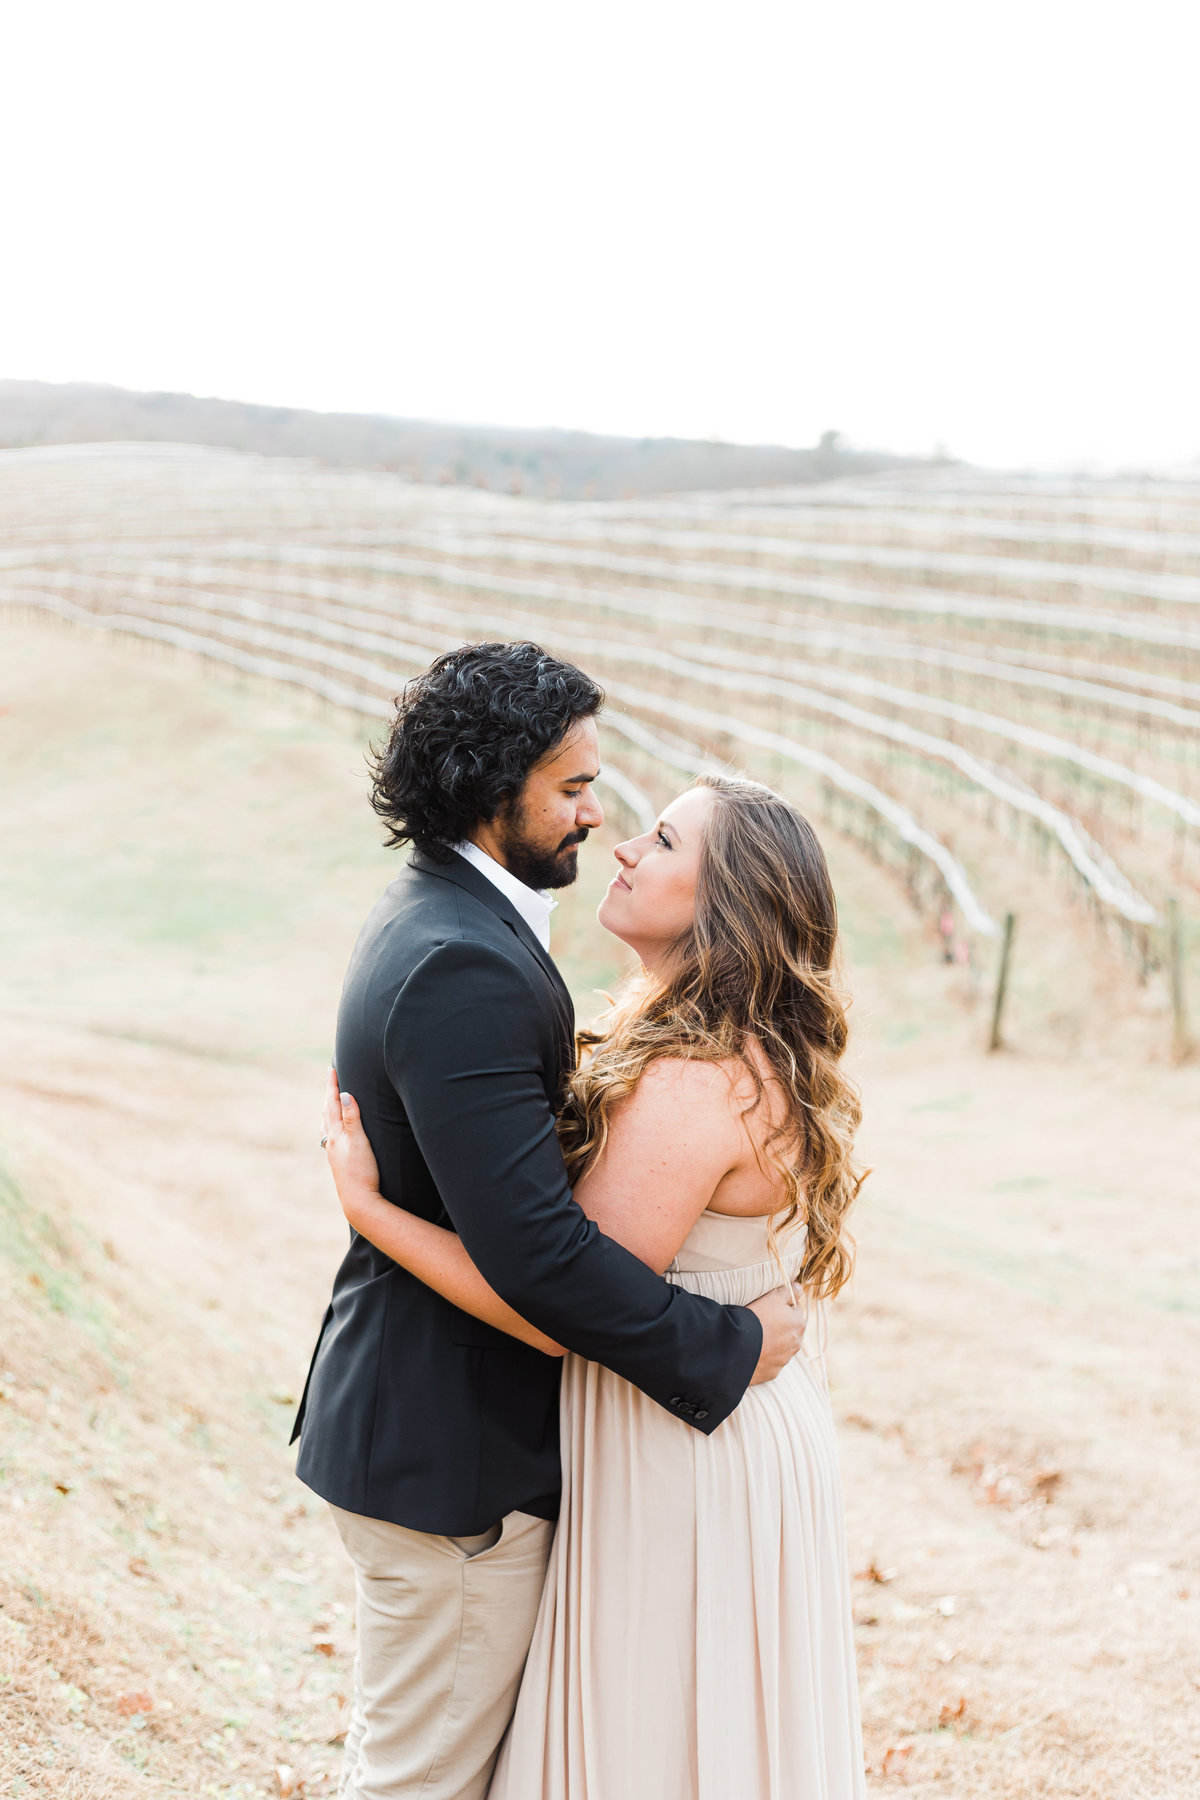 Motaluce Winery, Gainesville, GA Couple Engagement Anniversary Photography Session by Renee Jael-6